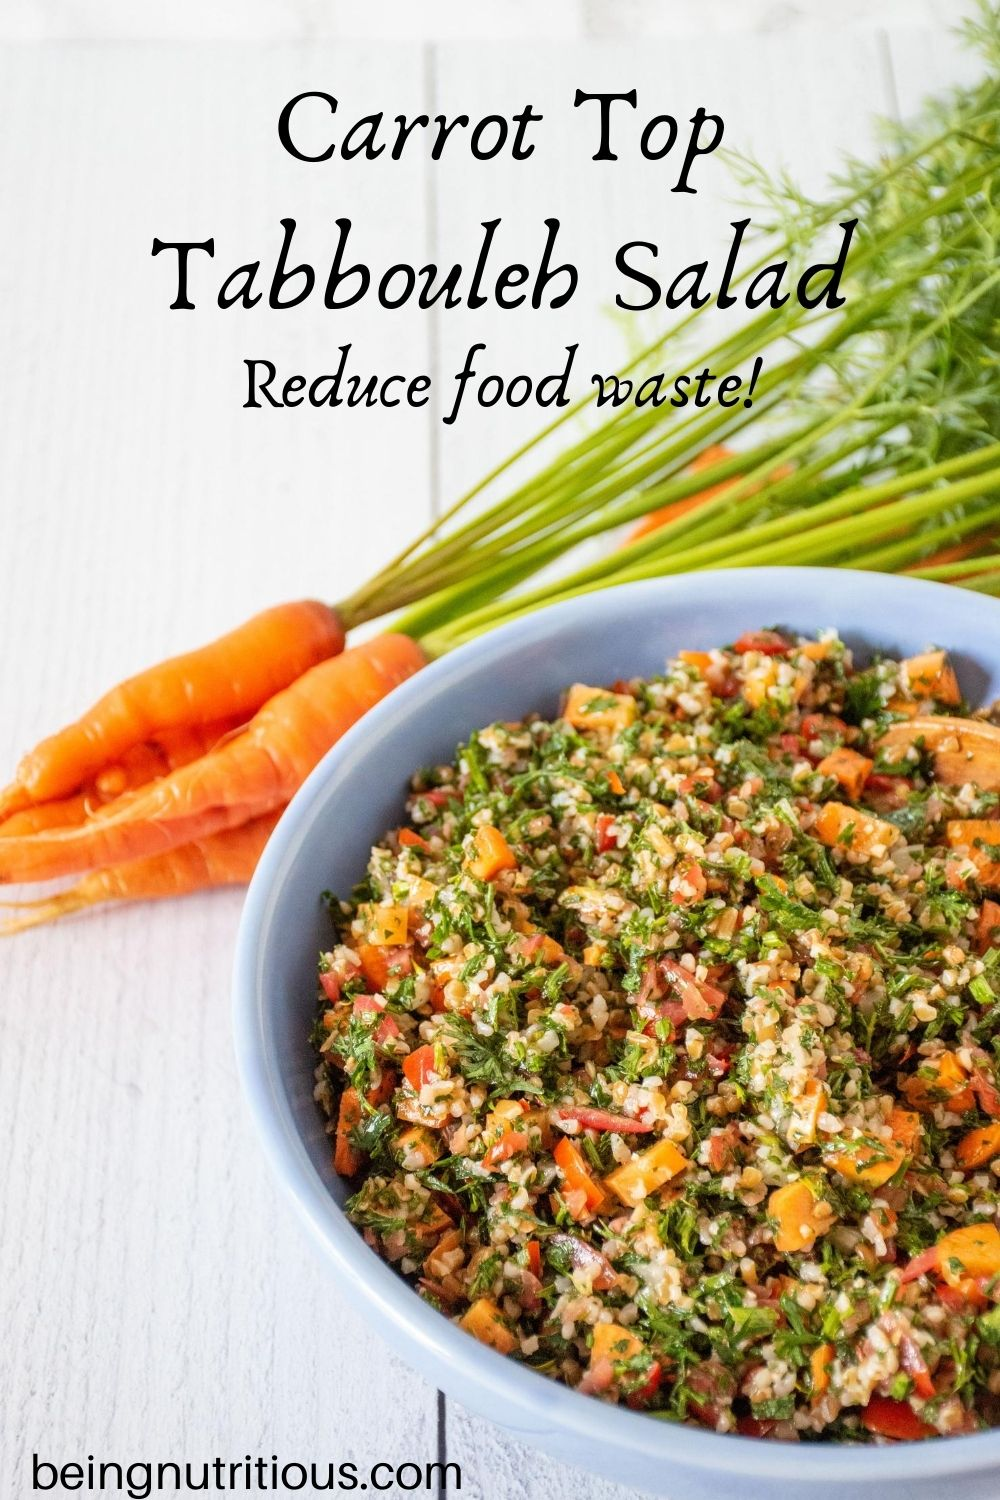 Tabbouleh in blue bowl, with whole carrots, tops attached, visible in background. Text overlay: Carrot top tabbouleh salad; reduce food waste!